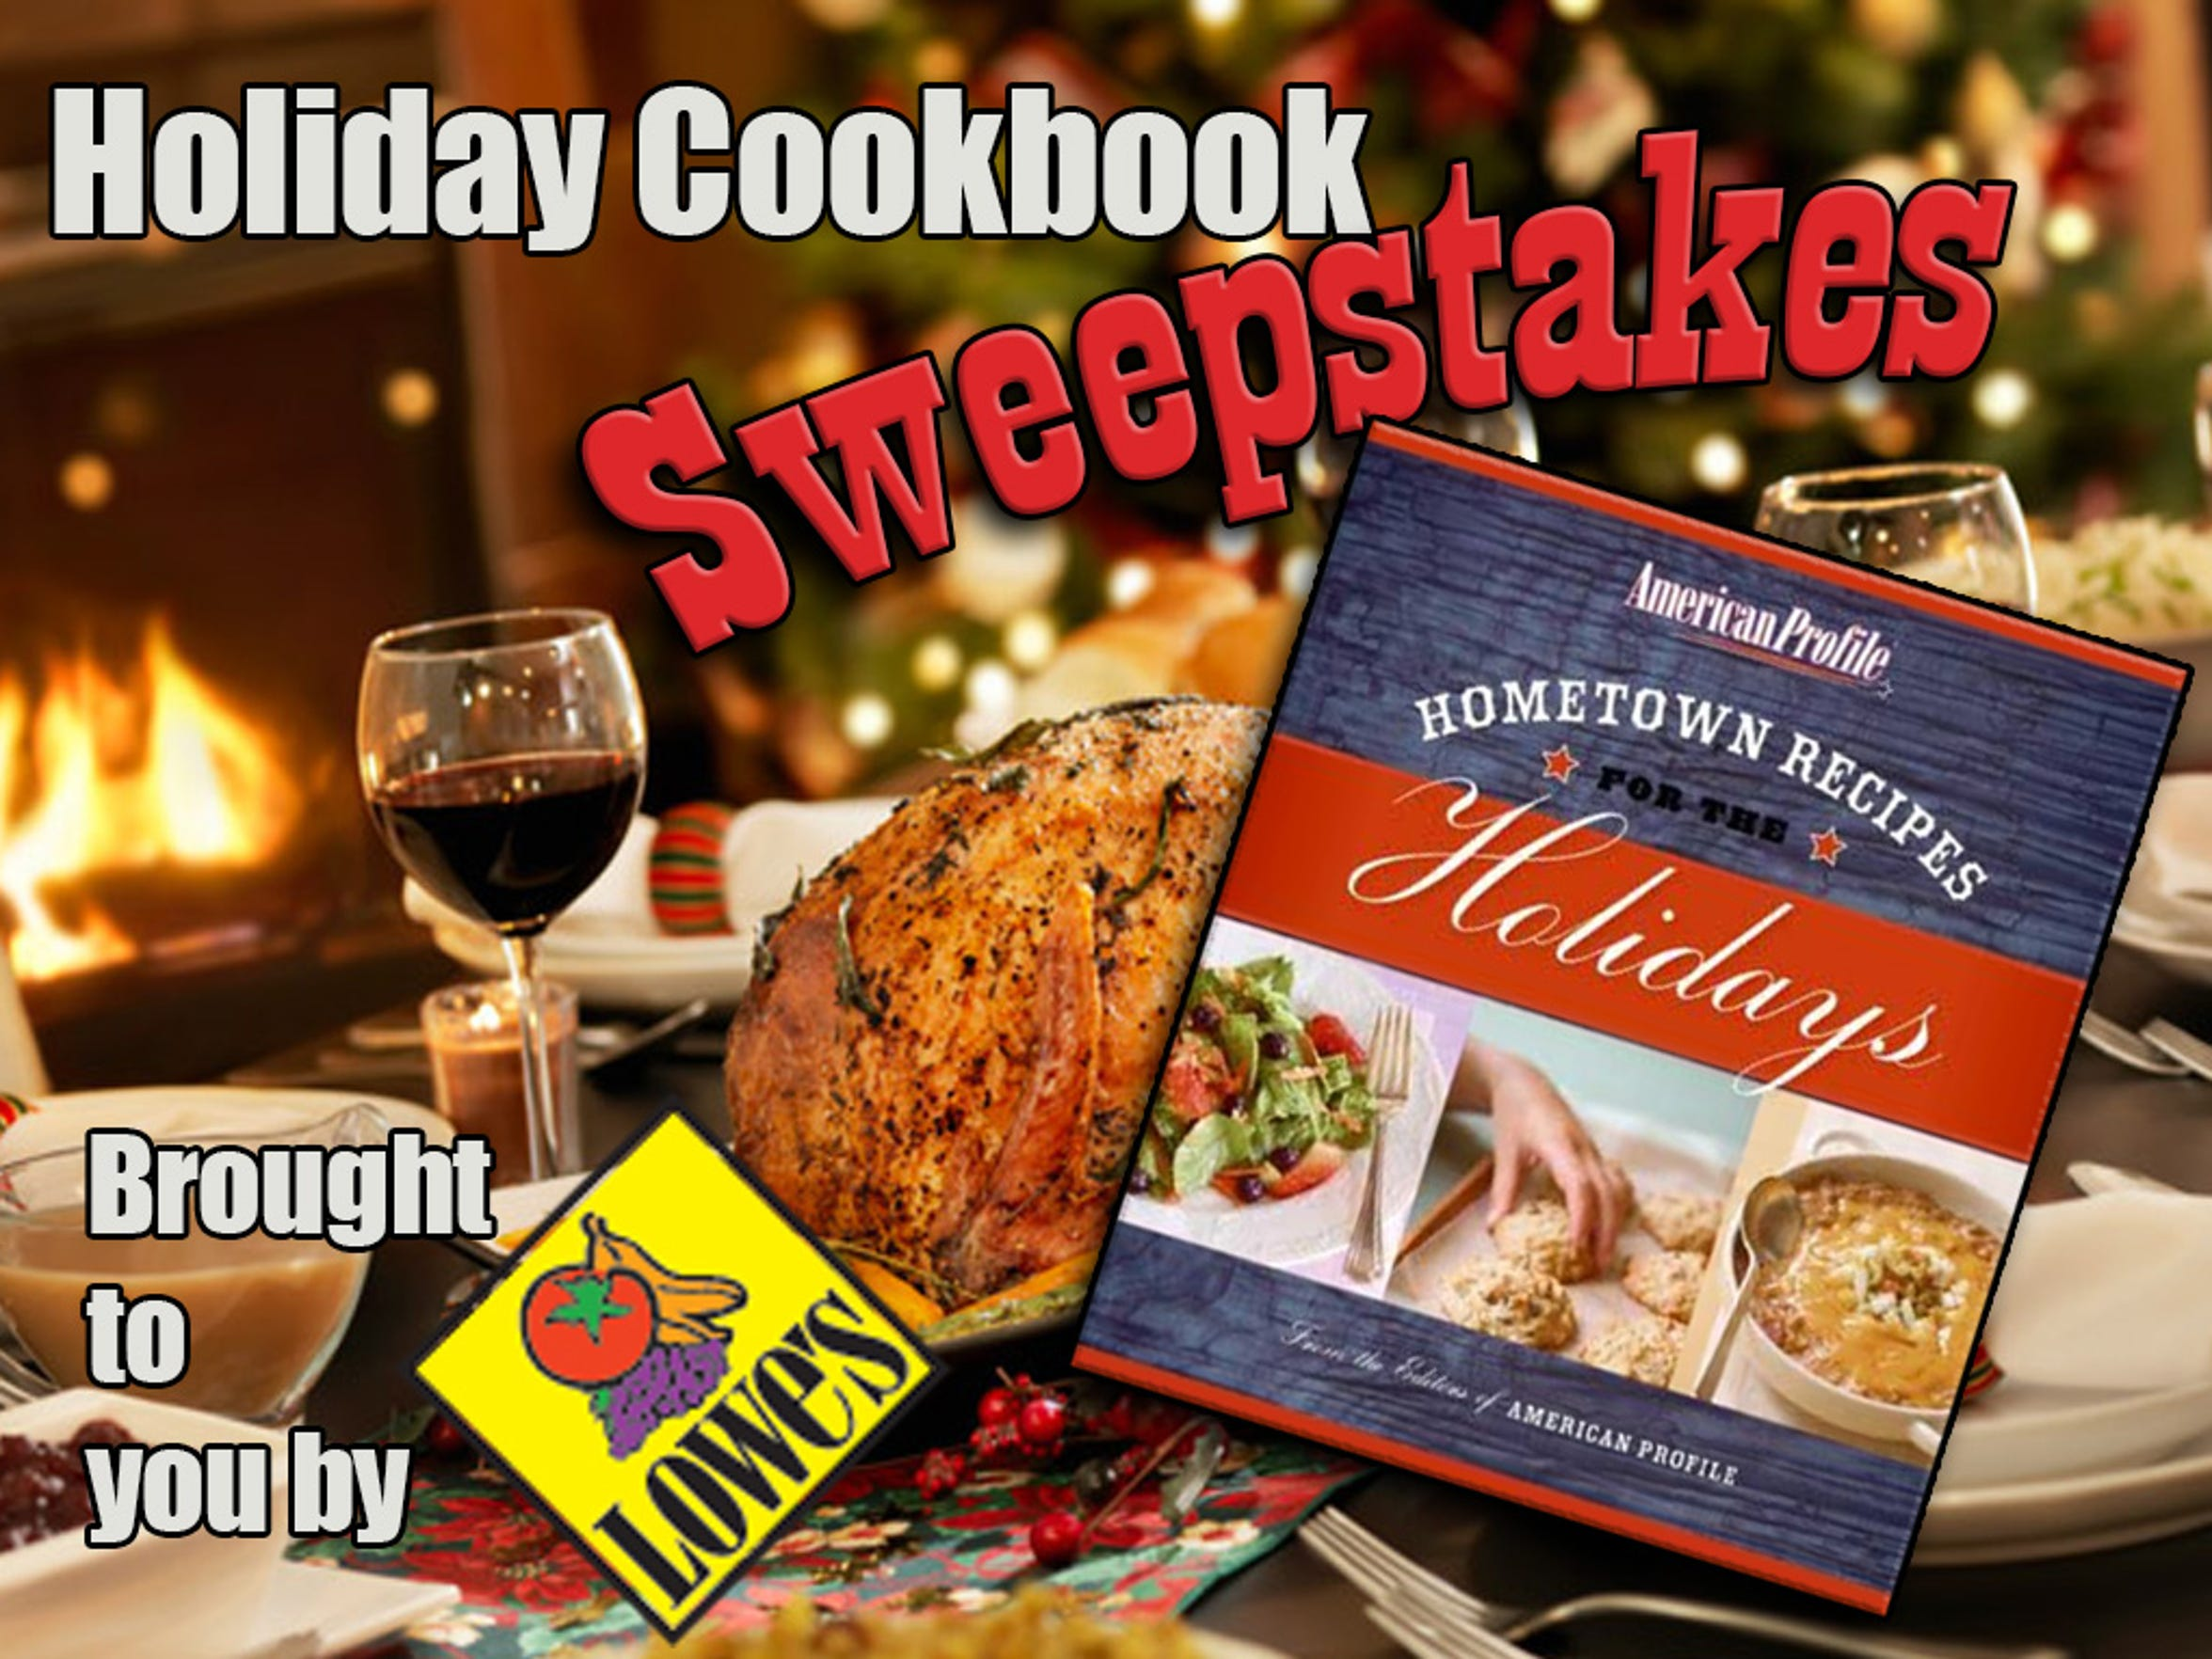 Holiday Cookbook Sweepstakes brought to you by Lowe's